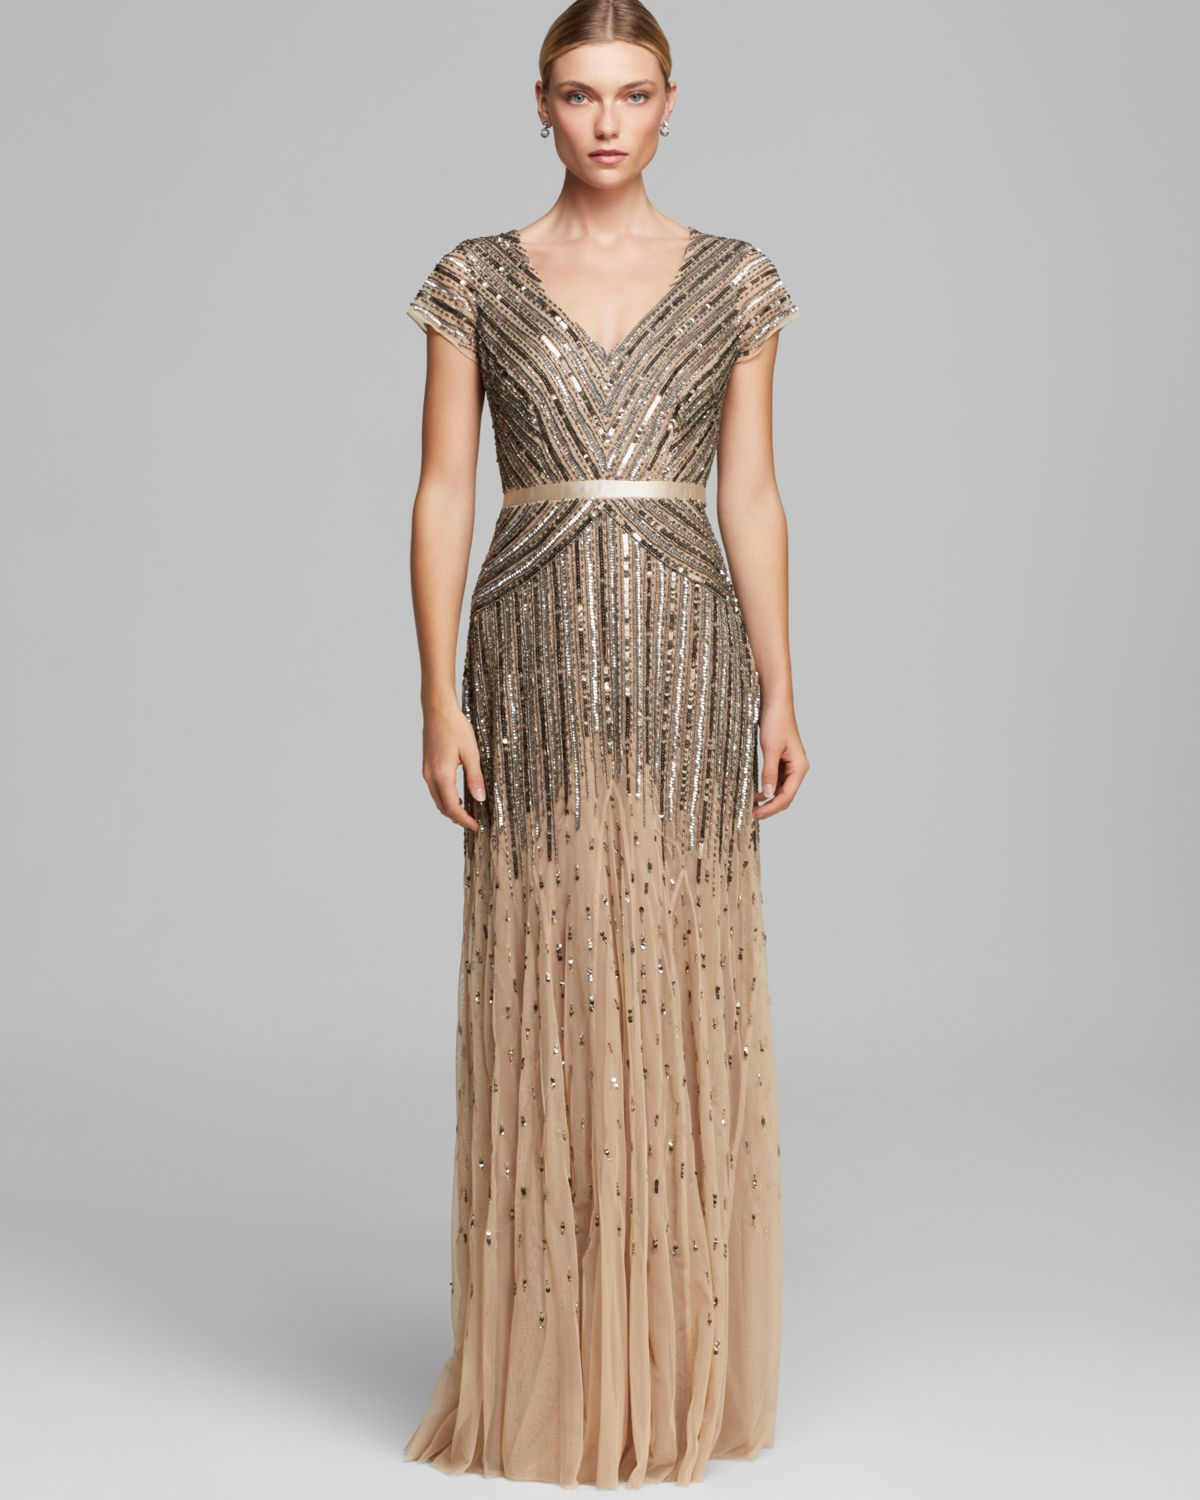 Lyst - Adrianna Papell Dress - V Neck Cap Sleeve Beaded in Brown